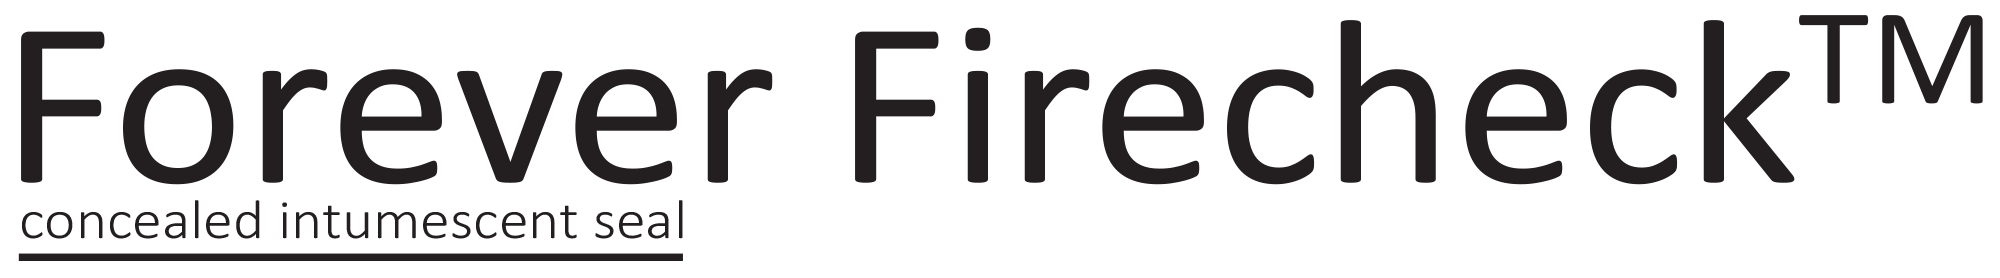 Forever Firecheck™ Concealed Intumescent Seal Logo